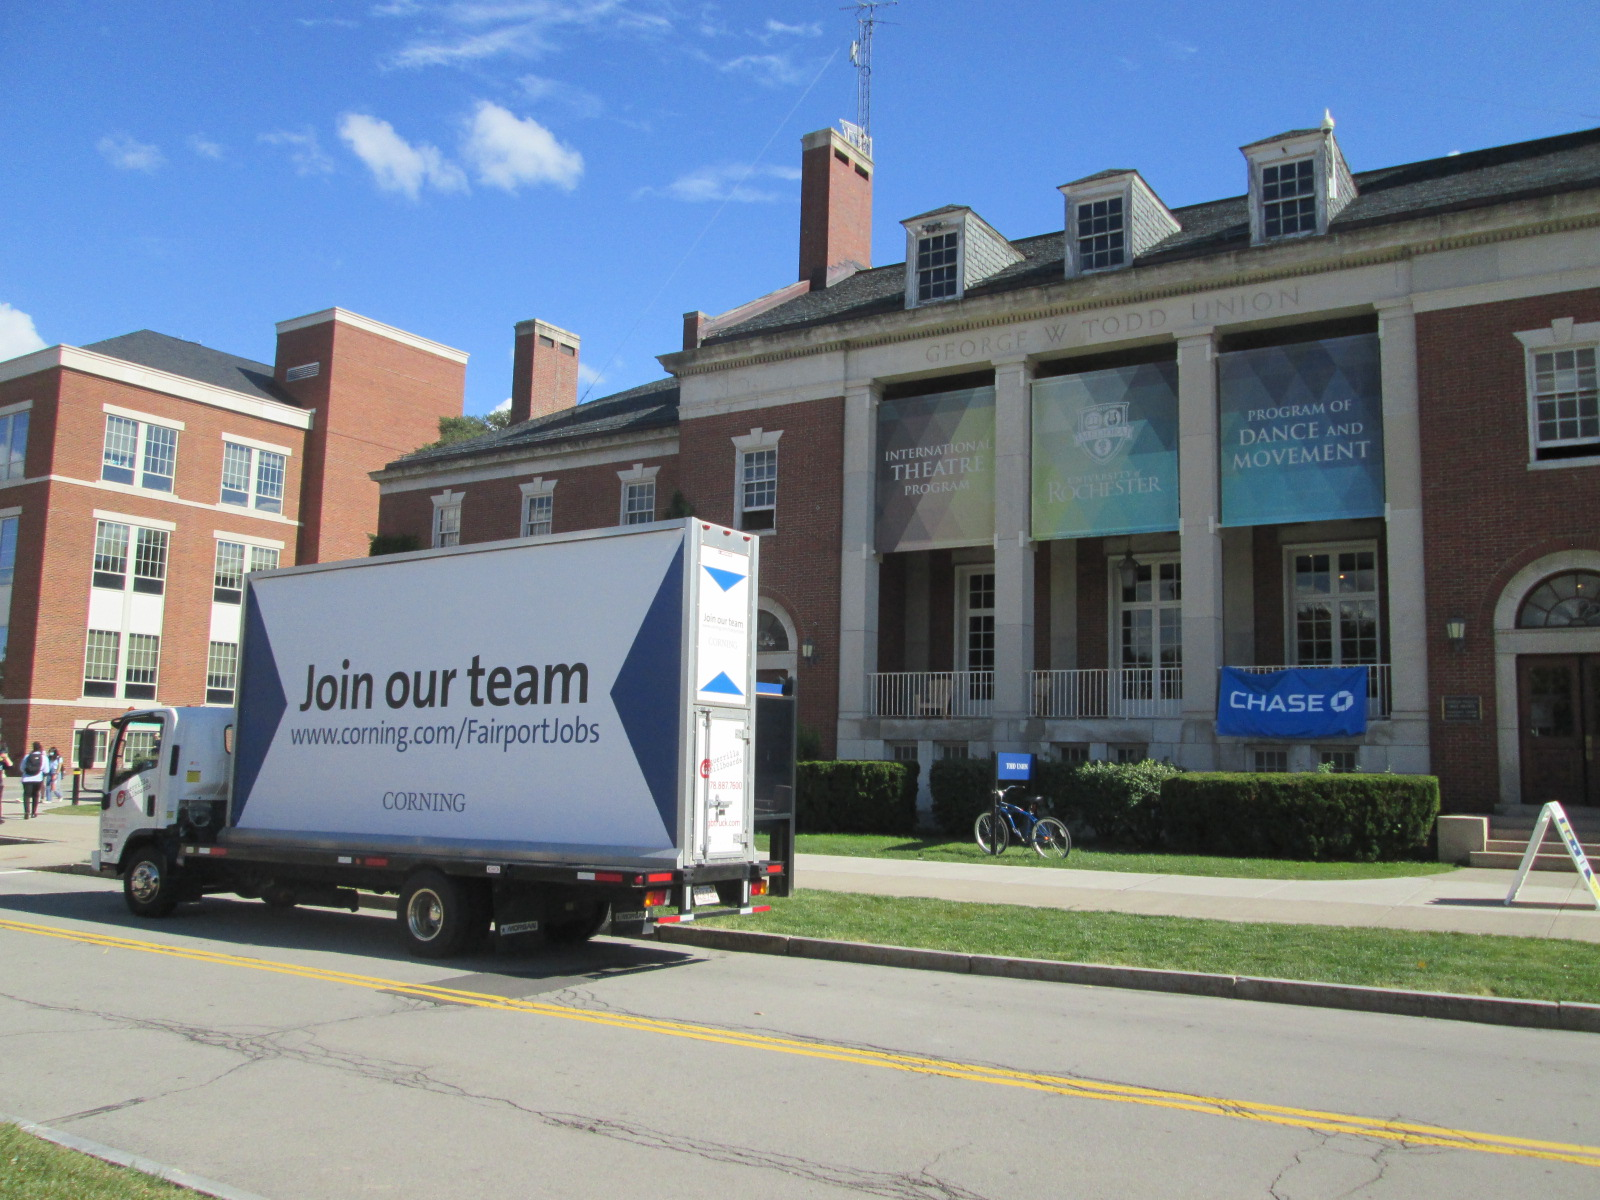 Join Our Team Mobile Billboard at the University of Rochester